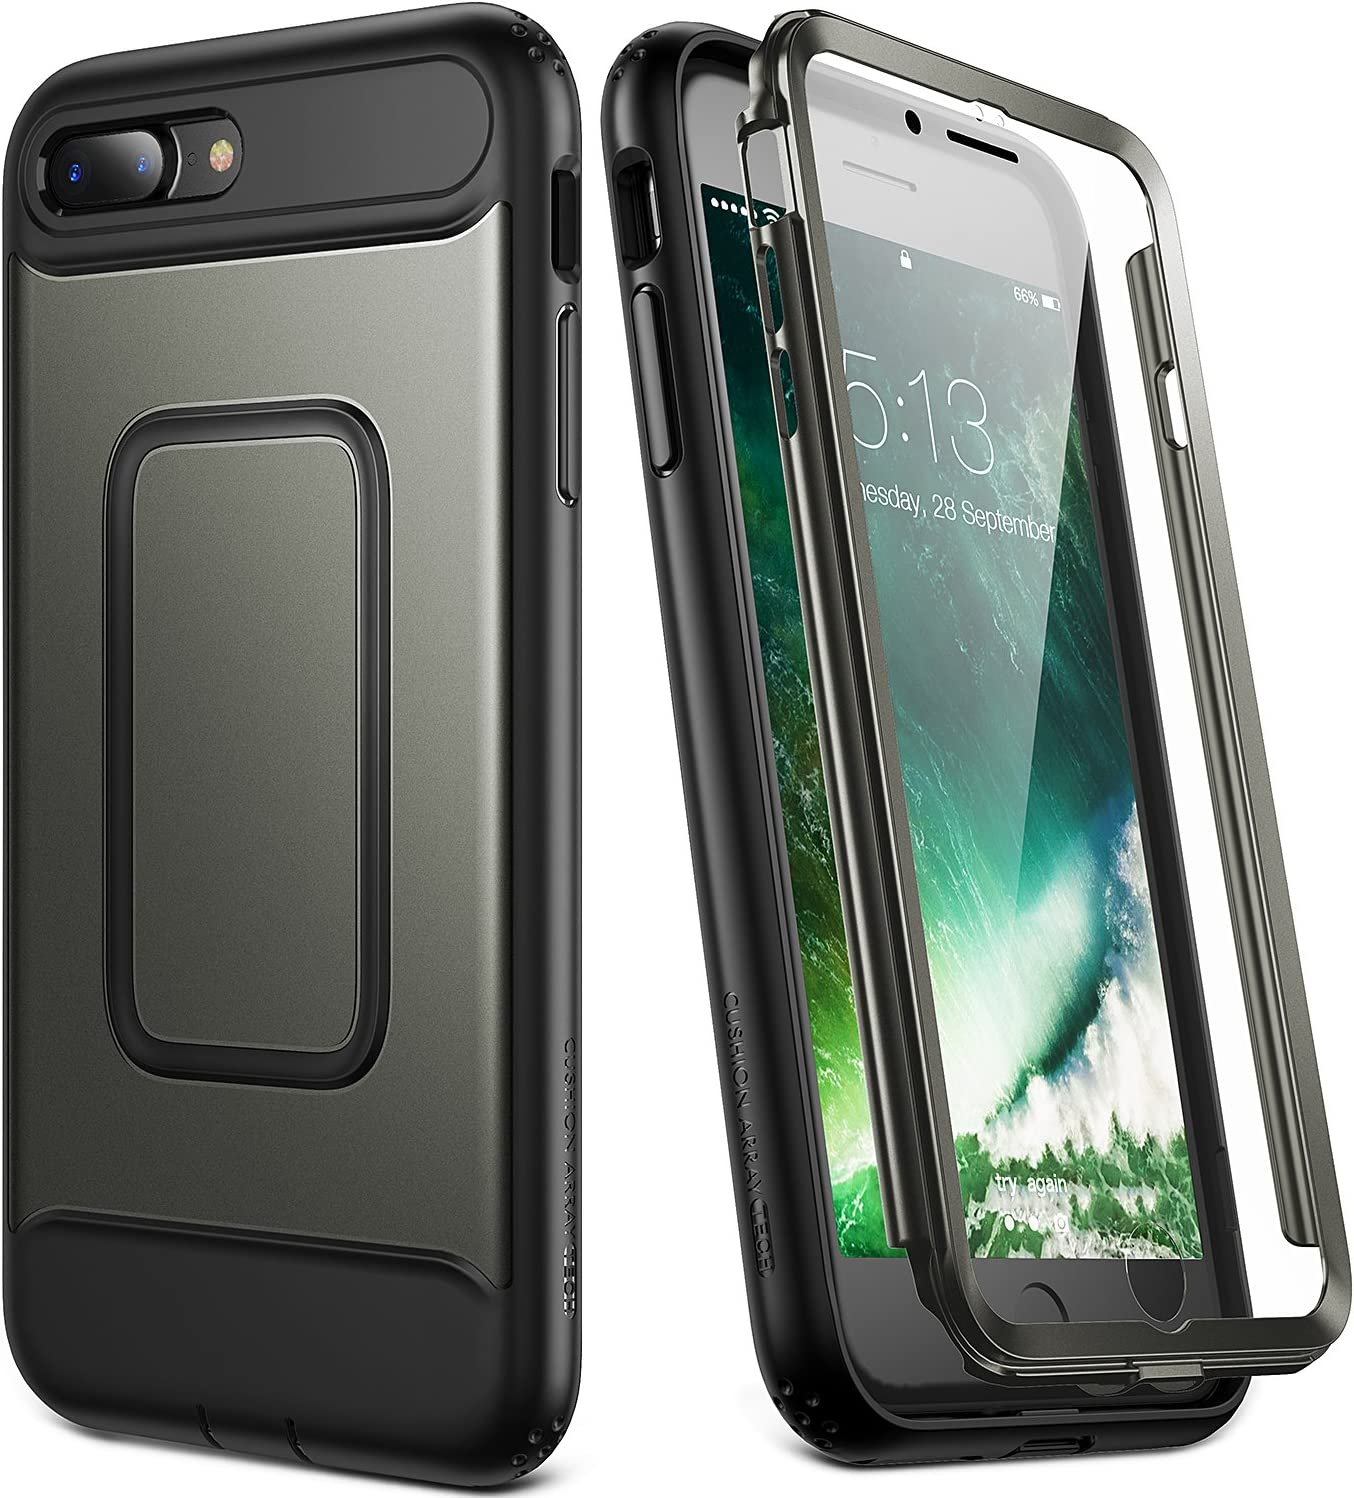 YOUMAKER Case for iPhone 8 Plus & iPhone 7 Plus, Full Body with Built-in Screen Protector Heavy Duty Protection Shockproof Slim Fit Cover for Apple iPhone 8 Plus (2017) 5.5 Inch - Gunmetal